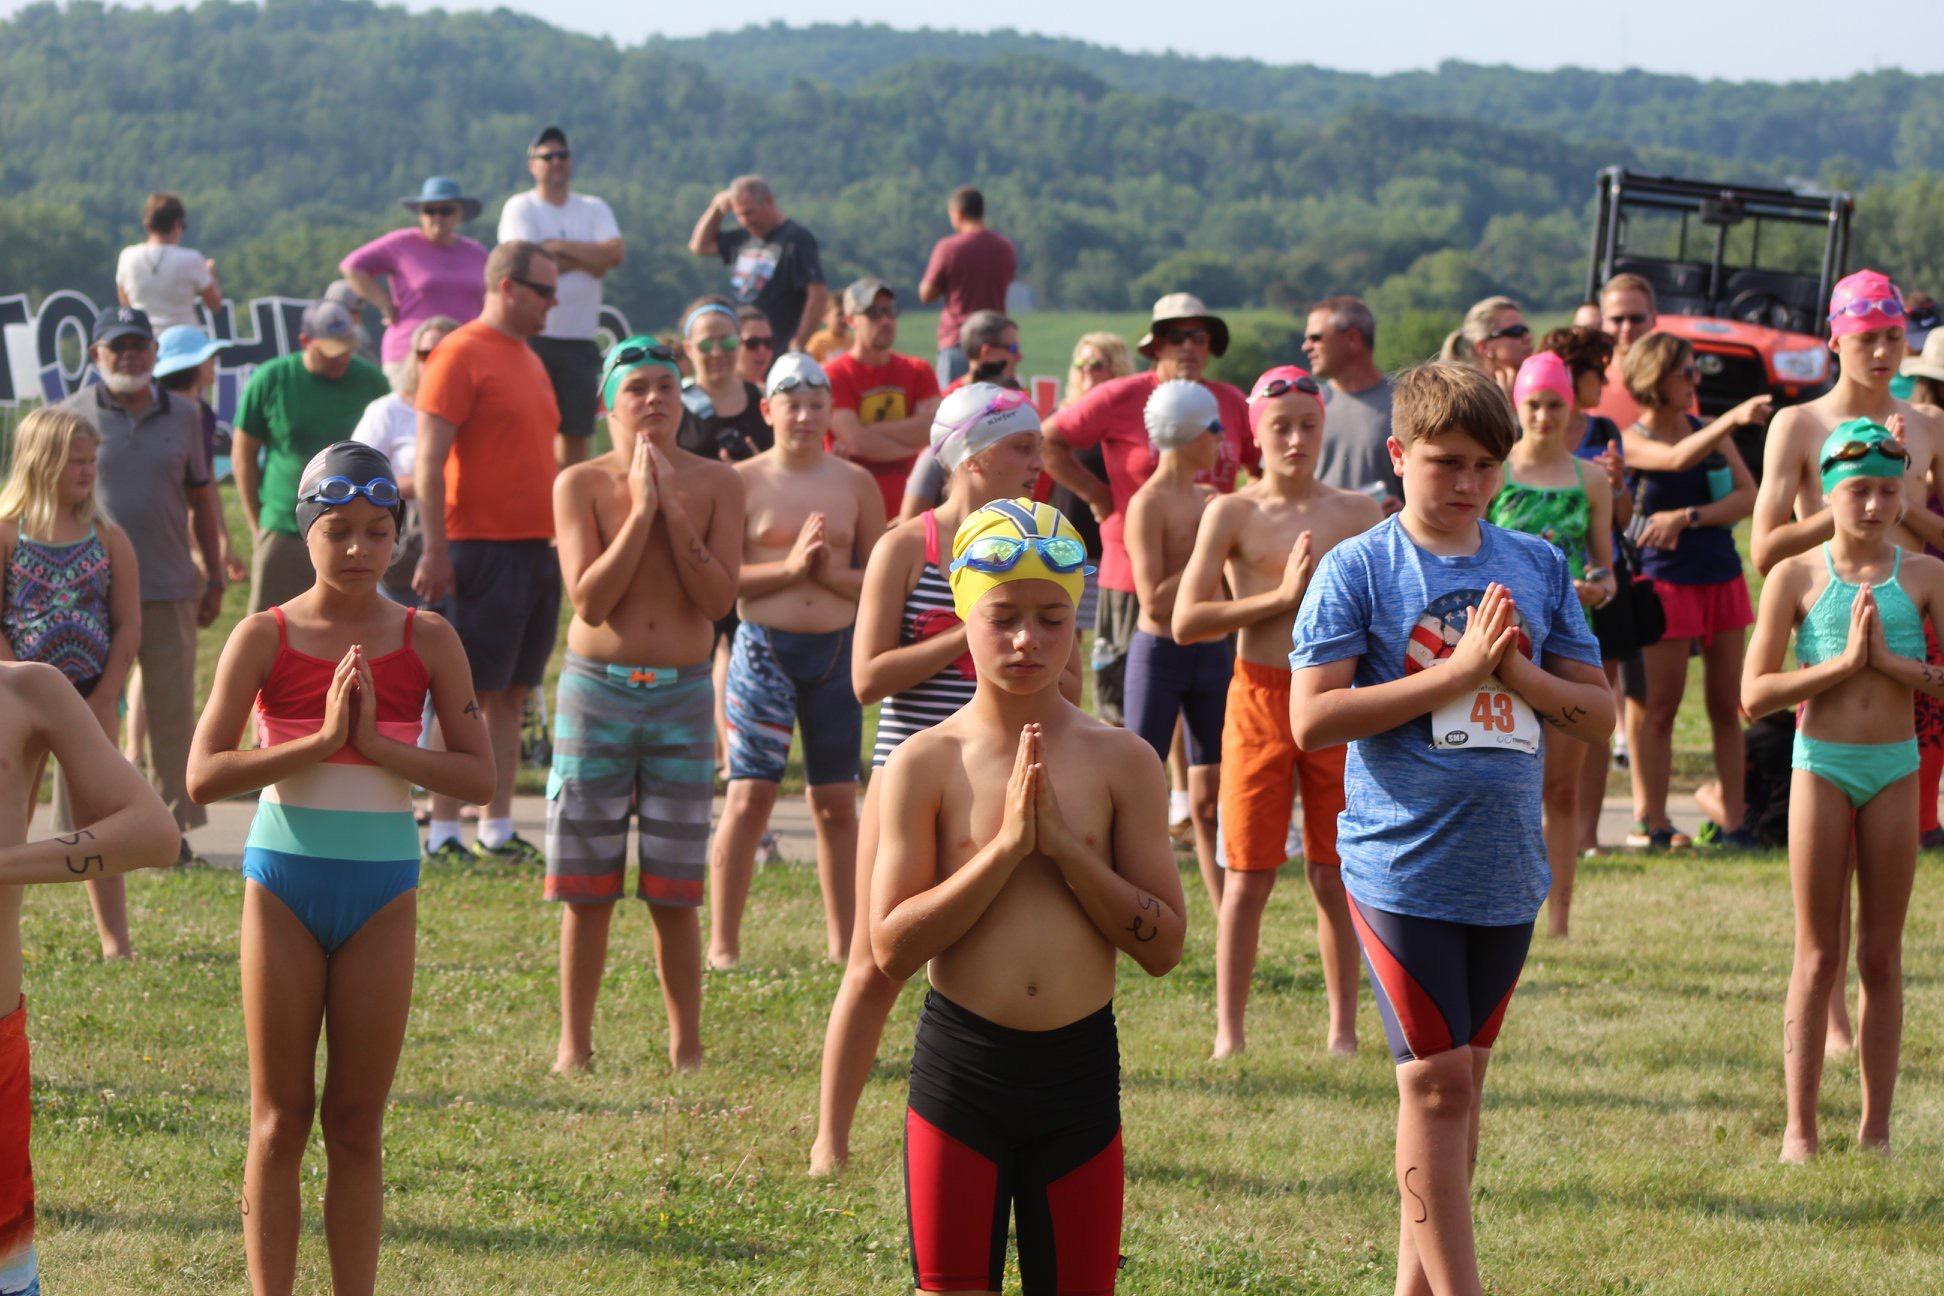 Butterfly Kids Yoga for Athletes led the pre-race stretching for Perinton's Youth Triathlon this weekend! Over 70 kids stretched, and then swam, biked and ran to the finish line — amazing job athletes! Thank you to Dennis from our Yoga for Athletes team for giving everyone a great stretch to help them be their best!